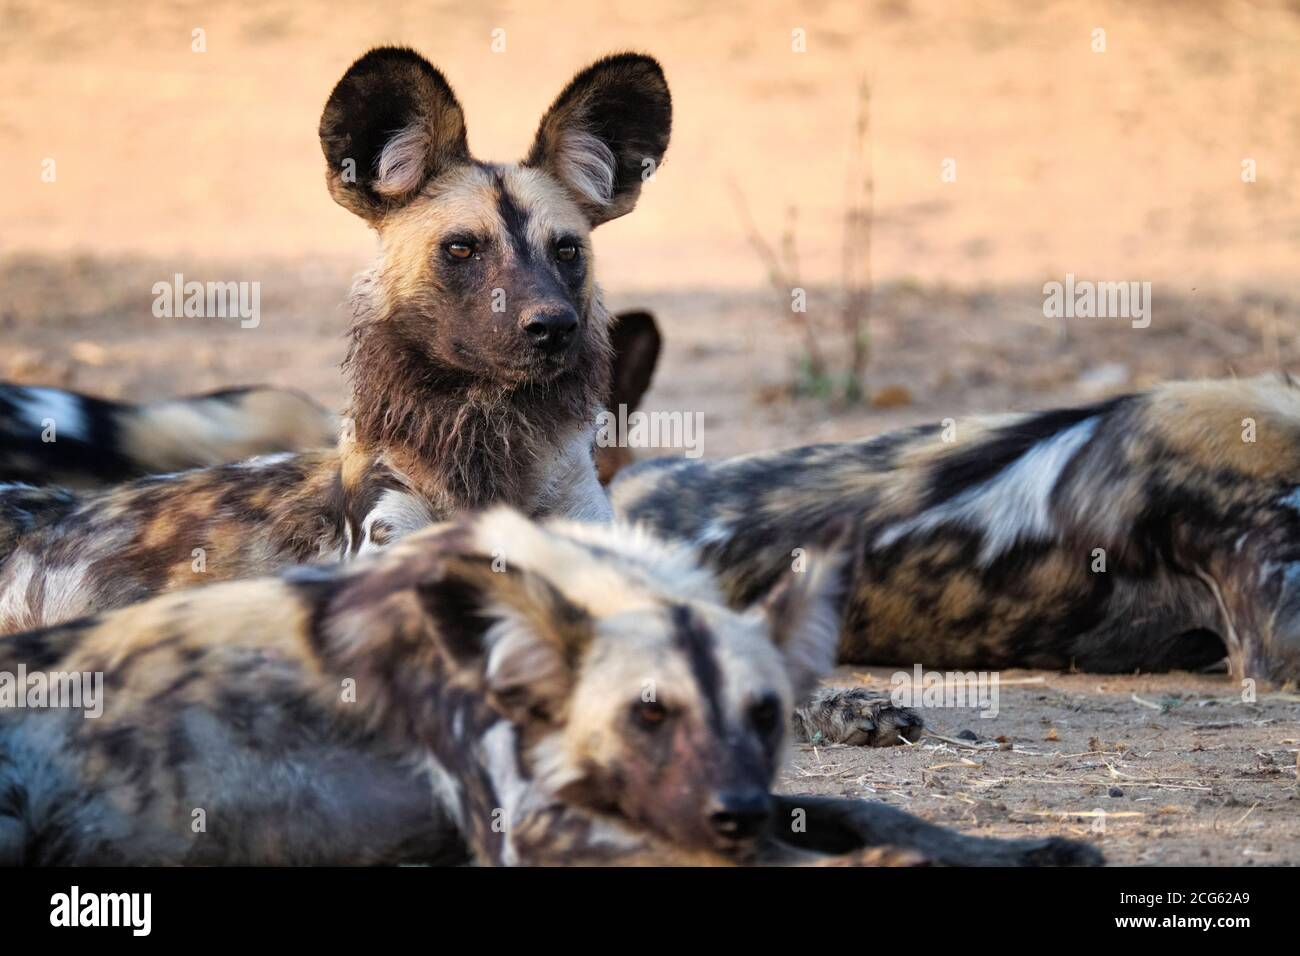 African Wild dog portrait, Lycaon pictus. The painted dog is an endangered species. South Luangwa National Park, Zambia, Africa. Stock Photo